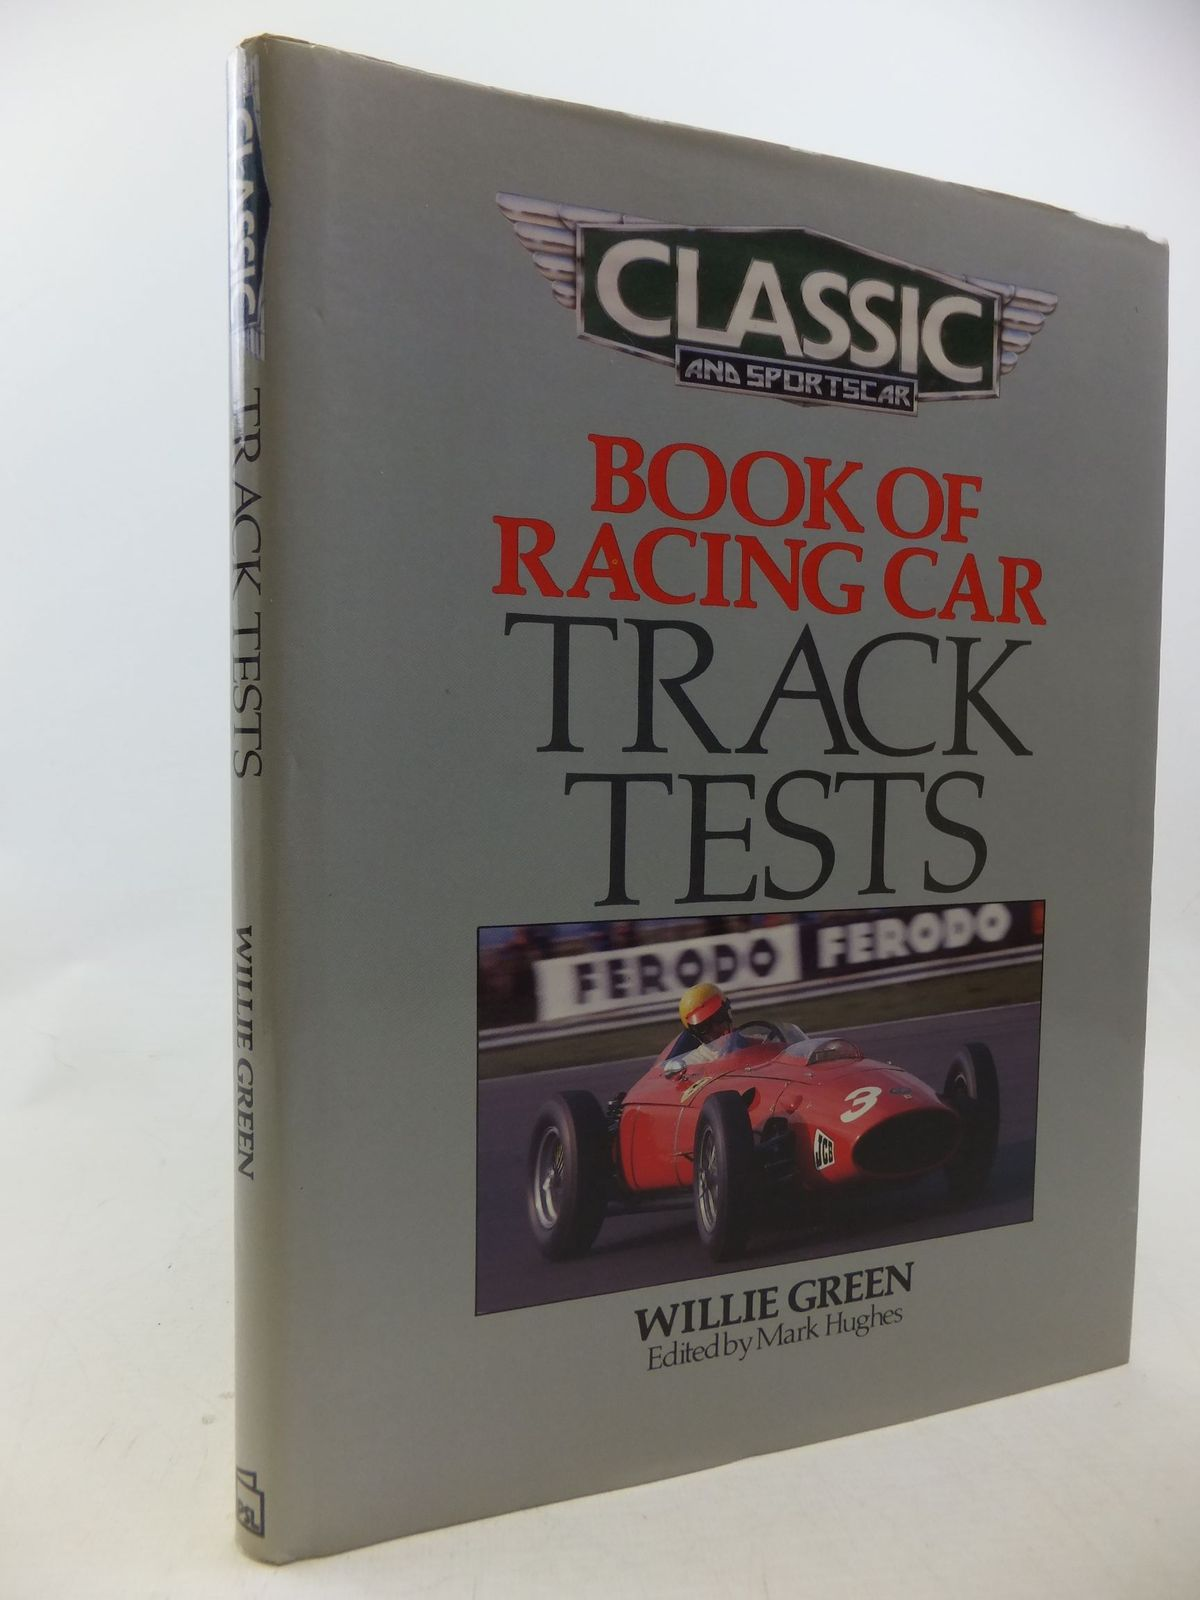 Photo of CLASSIC AND SPORTSCAR BOOK OF RACING CAR TRACK TESTS written by Green, Willie<br />Hughes, Mark published by Patrick Stephens Limited (STOCK CODE: 1710648)  for sale by Stella & Rose's Books